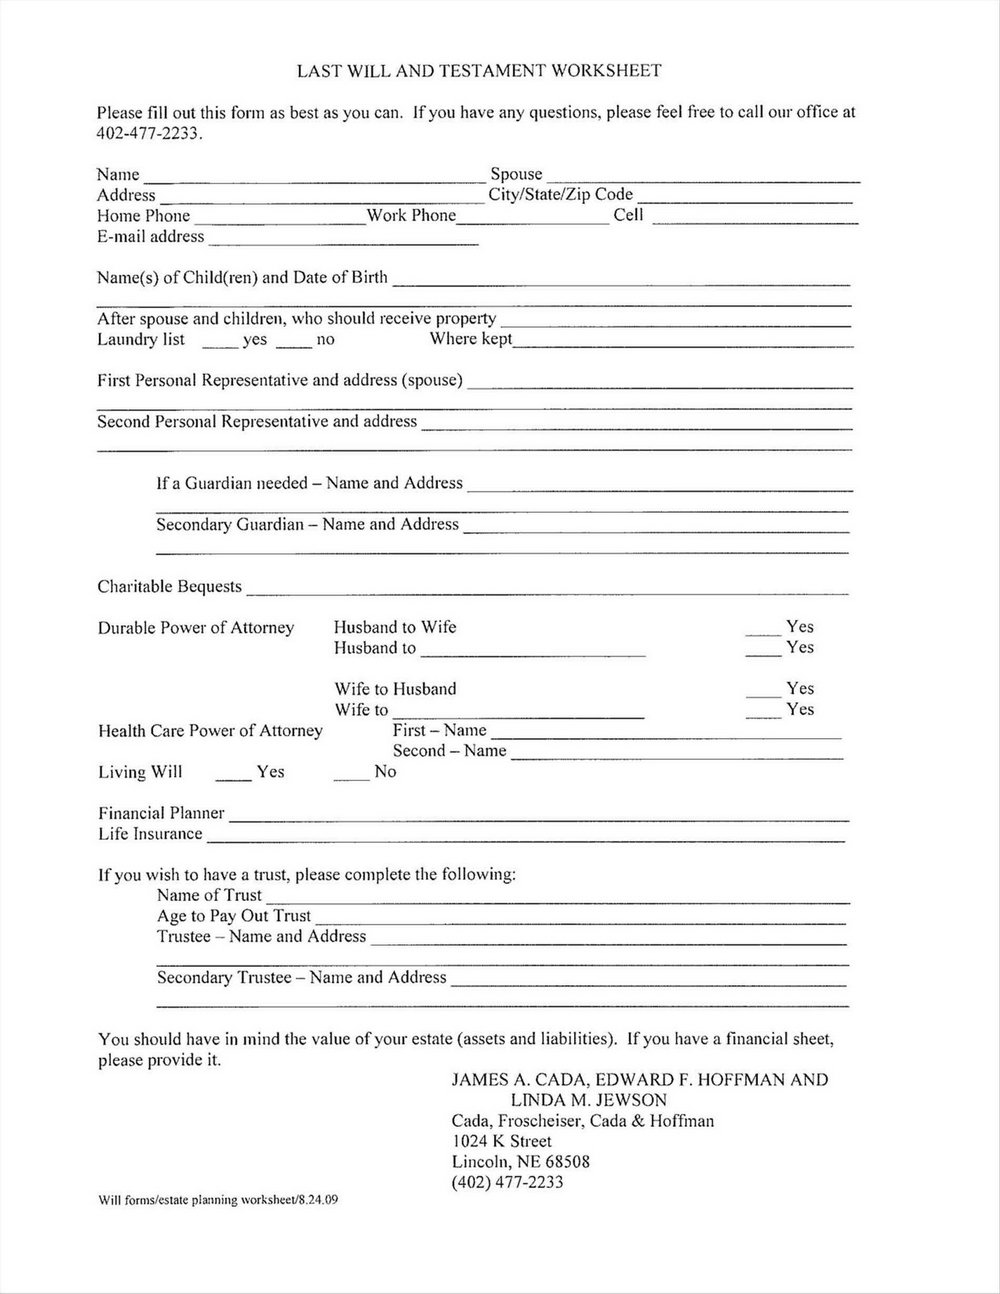 Last Will And Testament Template Free Download Uk